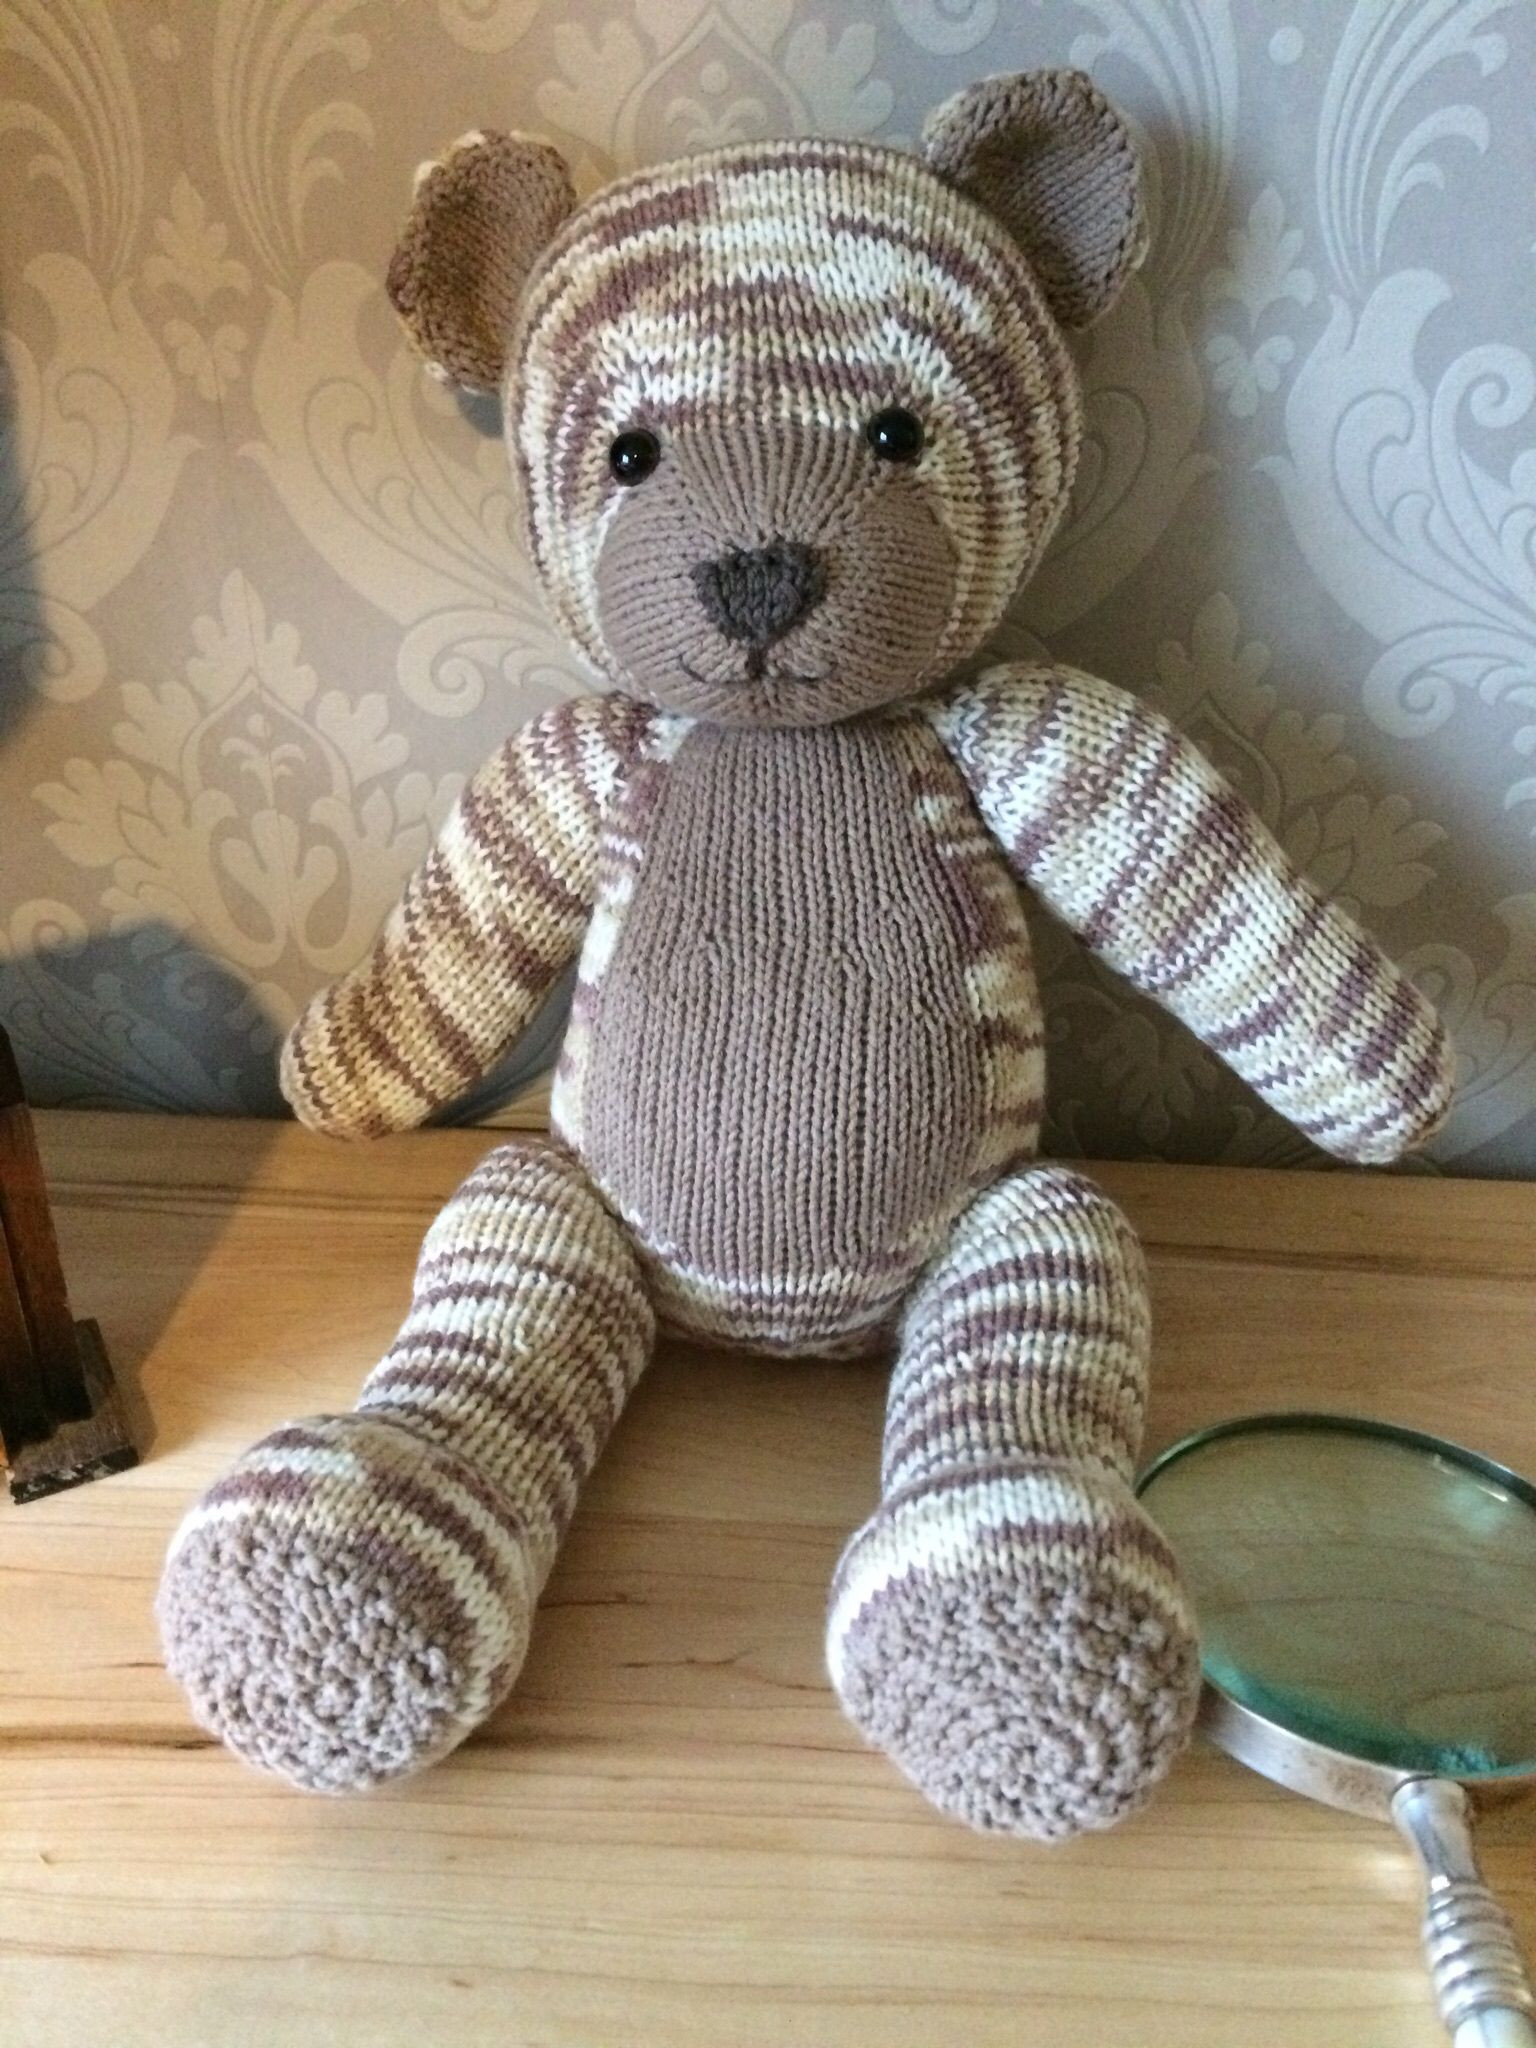 Beautiful Knitables Teddy Bear Knitting Project by Susy J Knitted Teddy Bear Of Amazing 45 Ideas Knitted Teddy Bear